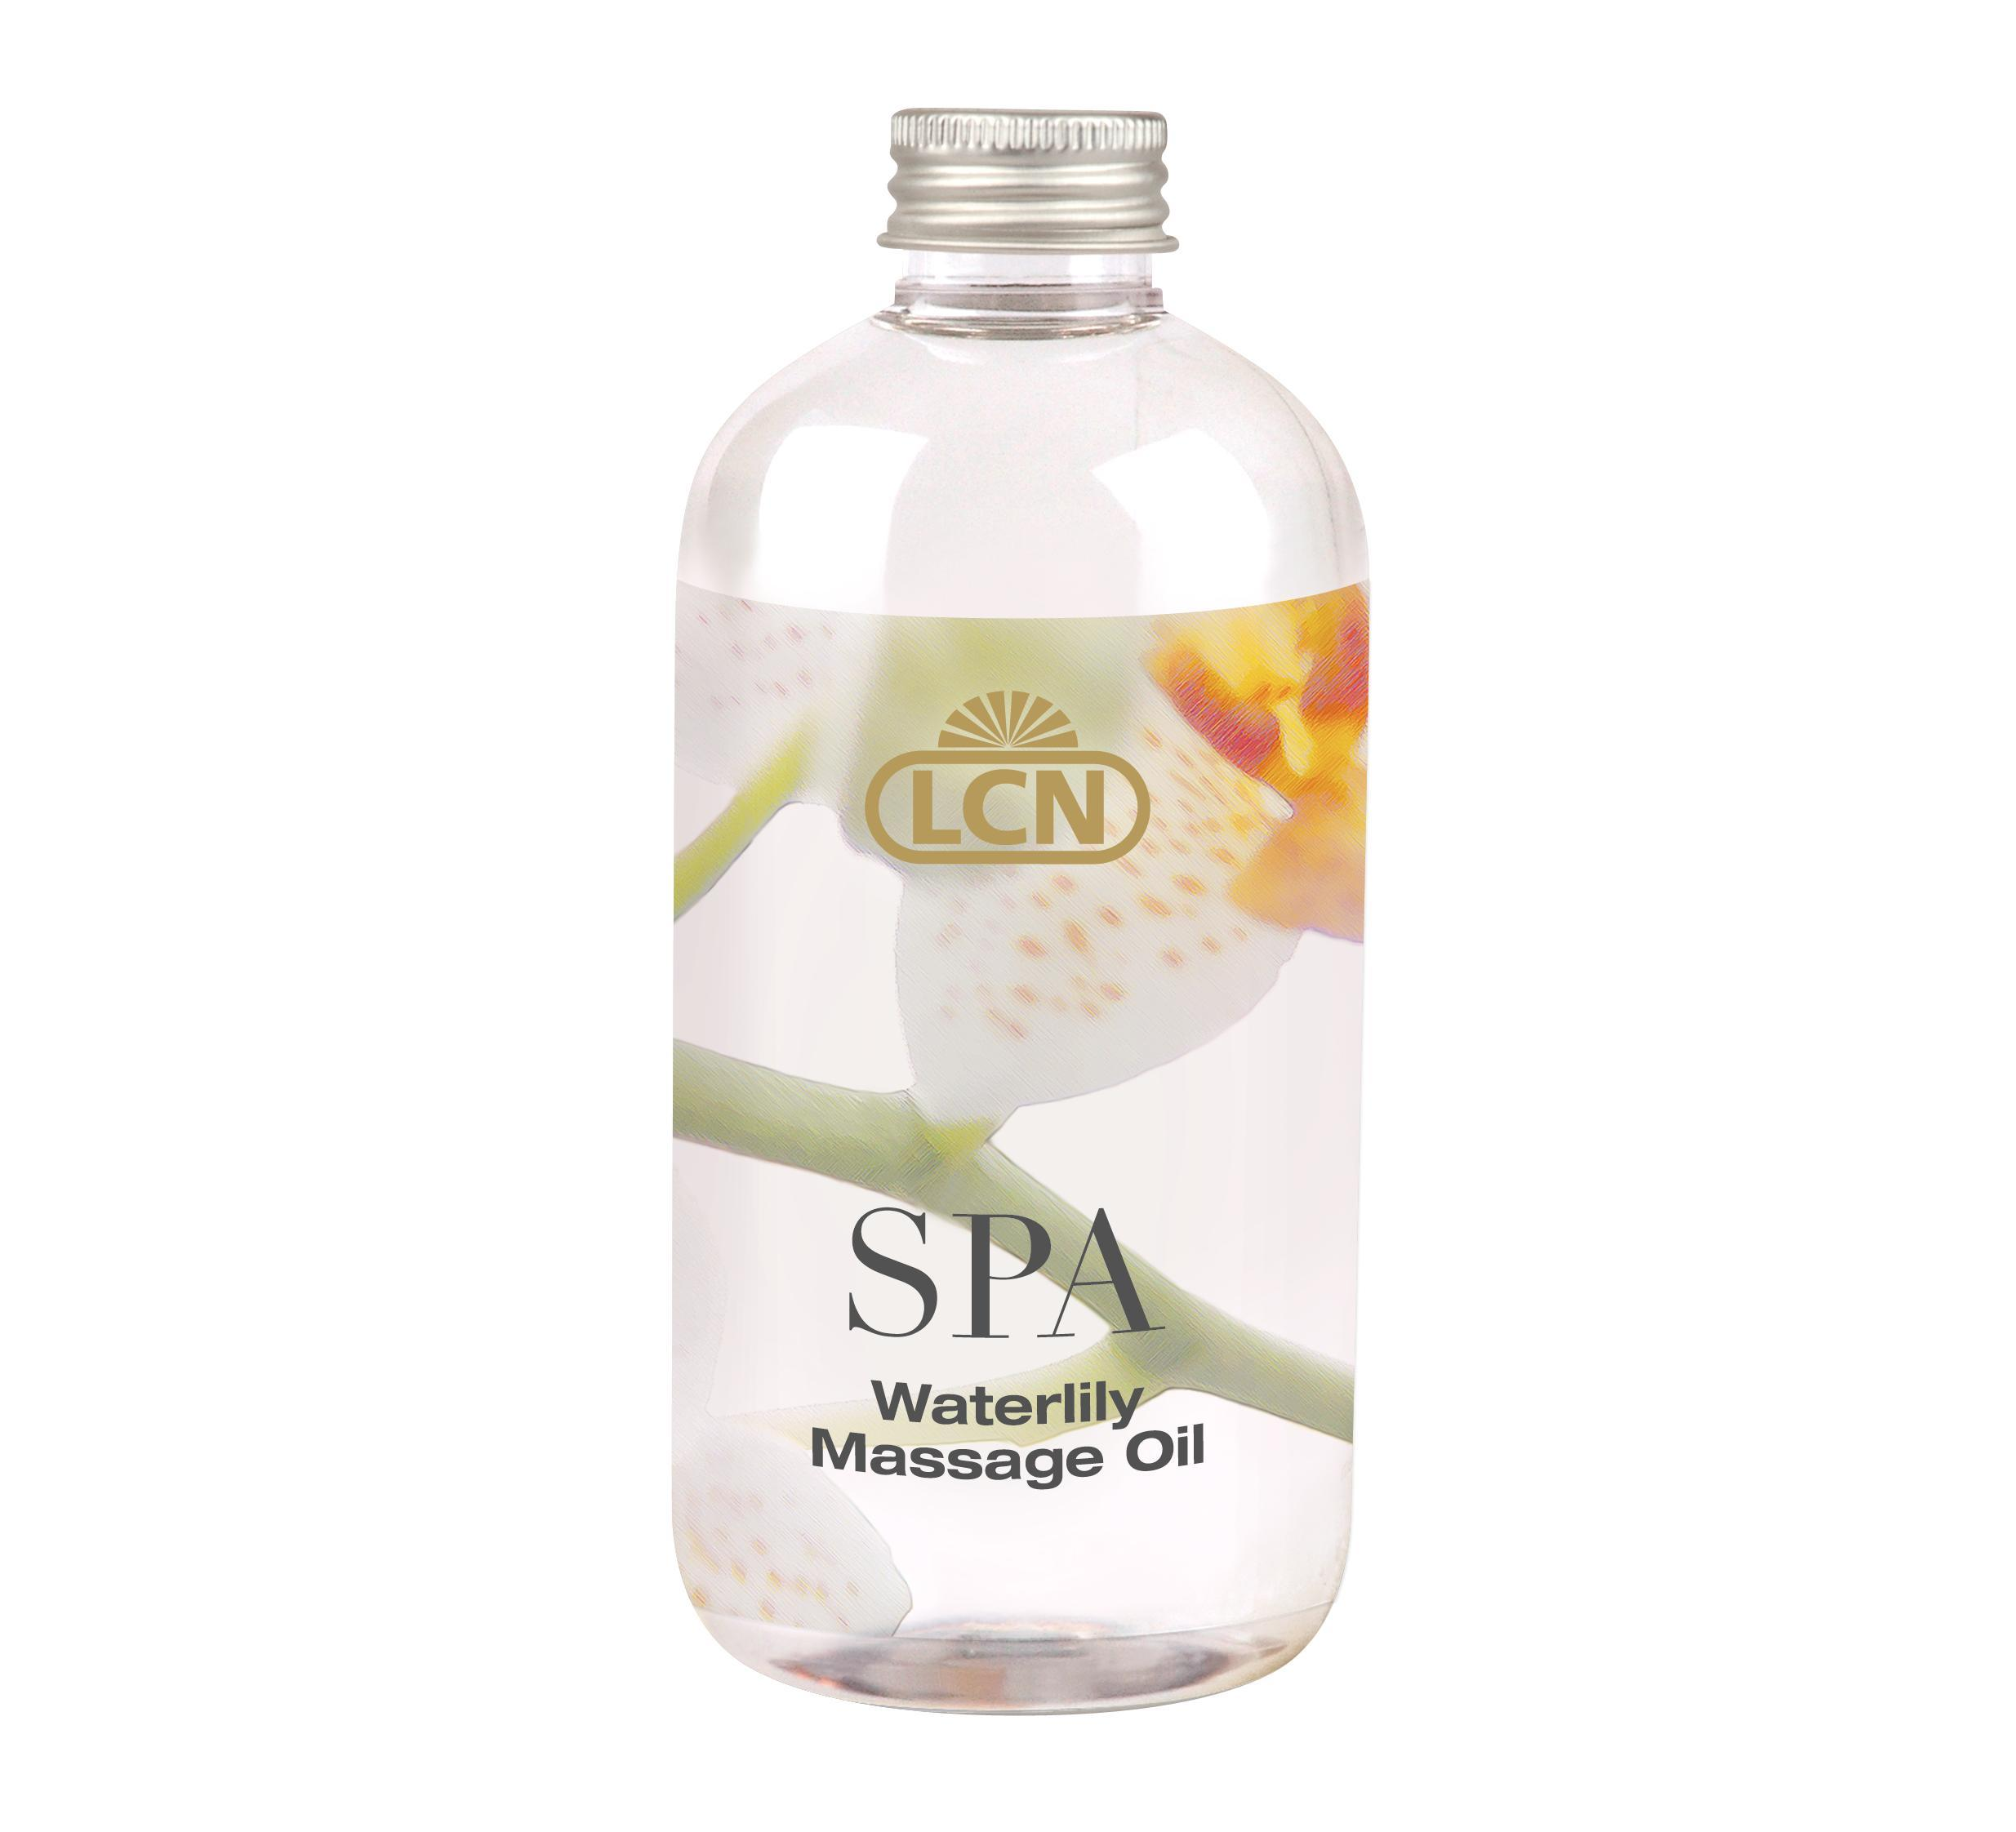 Waterlily Massage Oil, 300ml